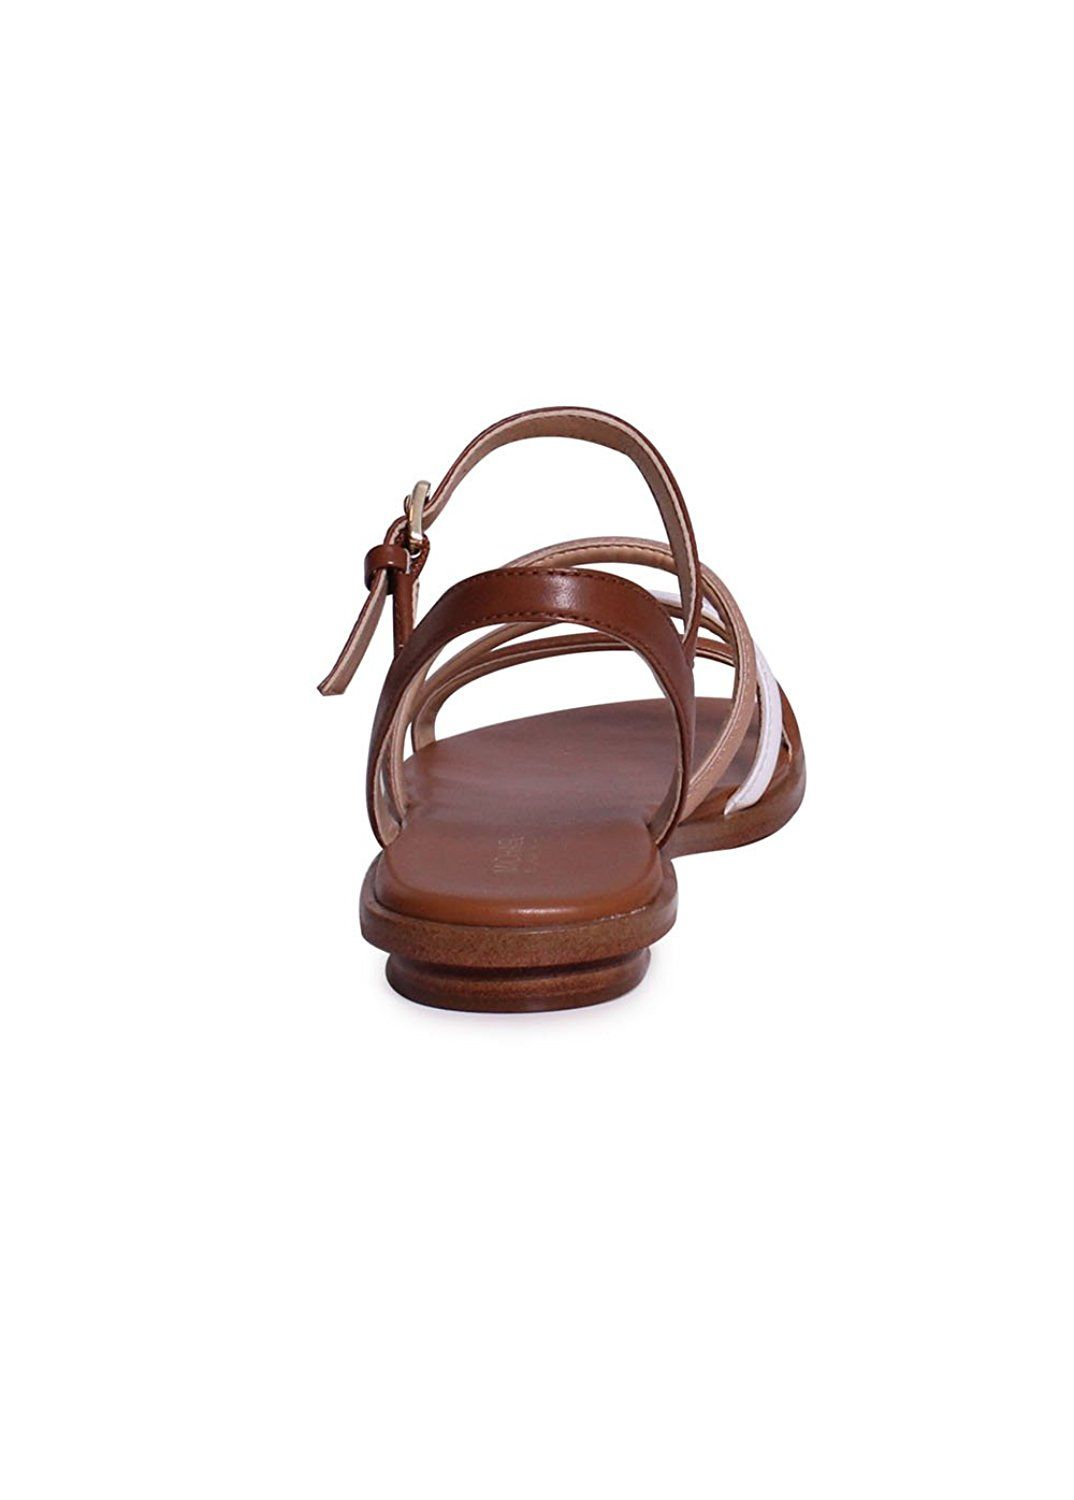 050c259dc2 Michael Kors Nantucket Leather Flat Sandal In Luggage Toffee * For more  information, visit image link. #shoesoftheday